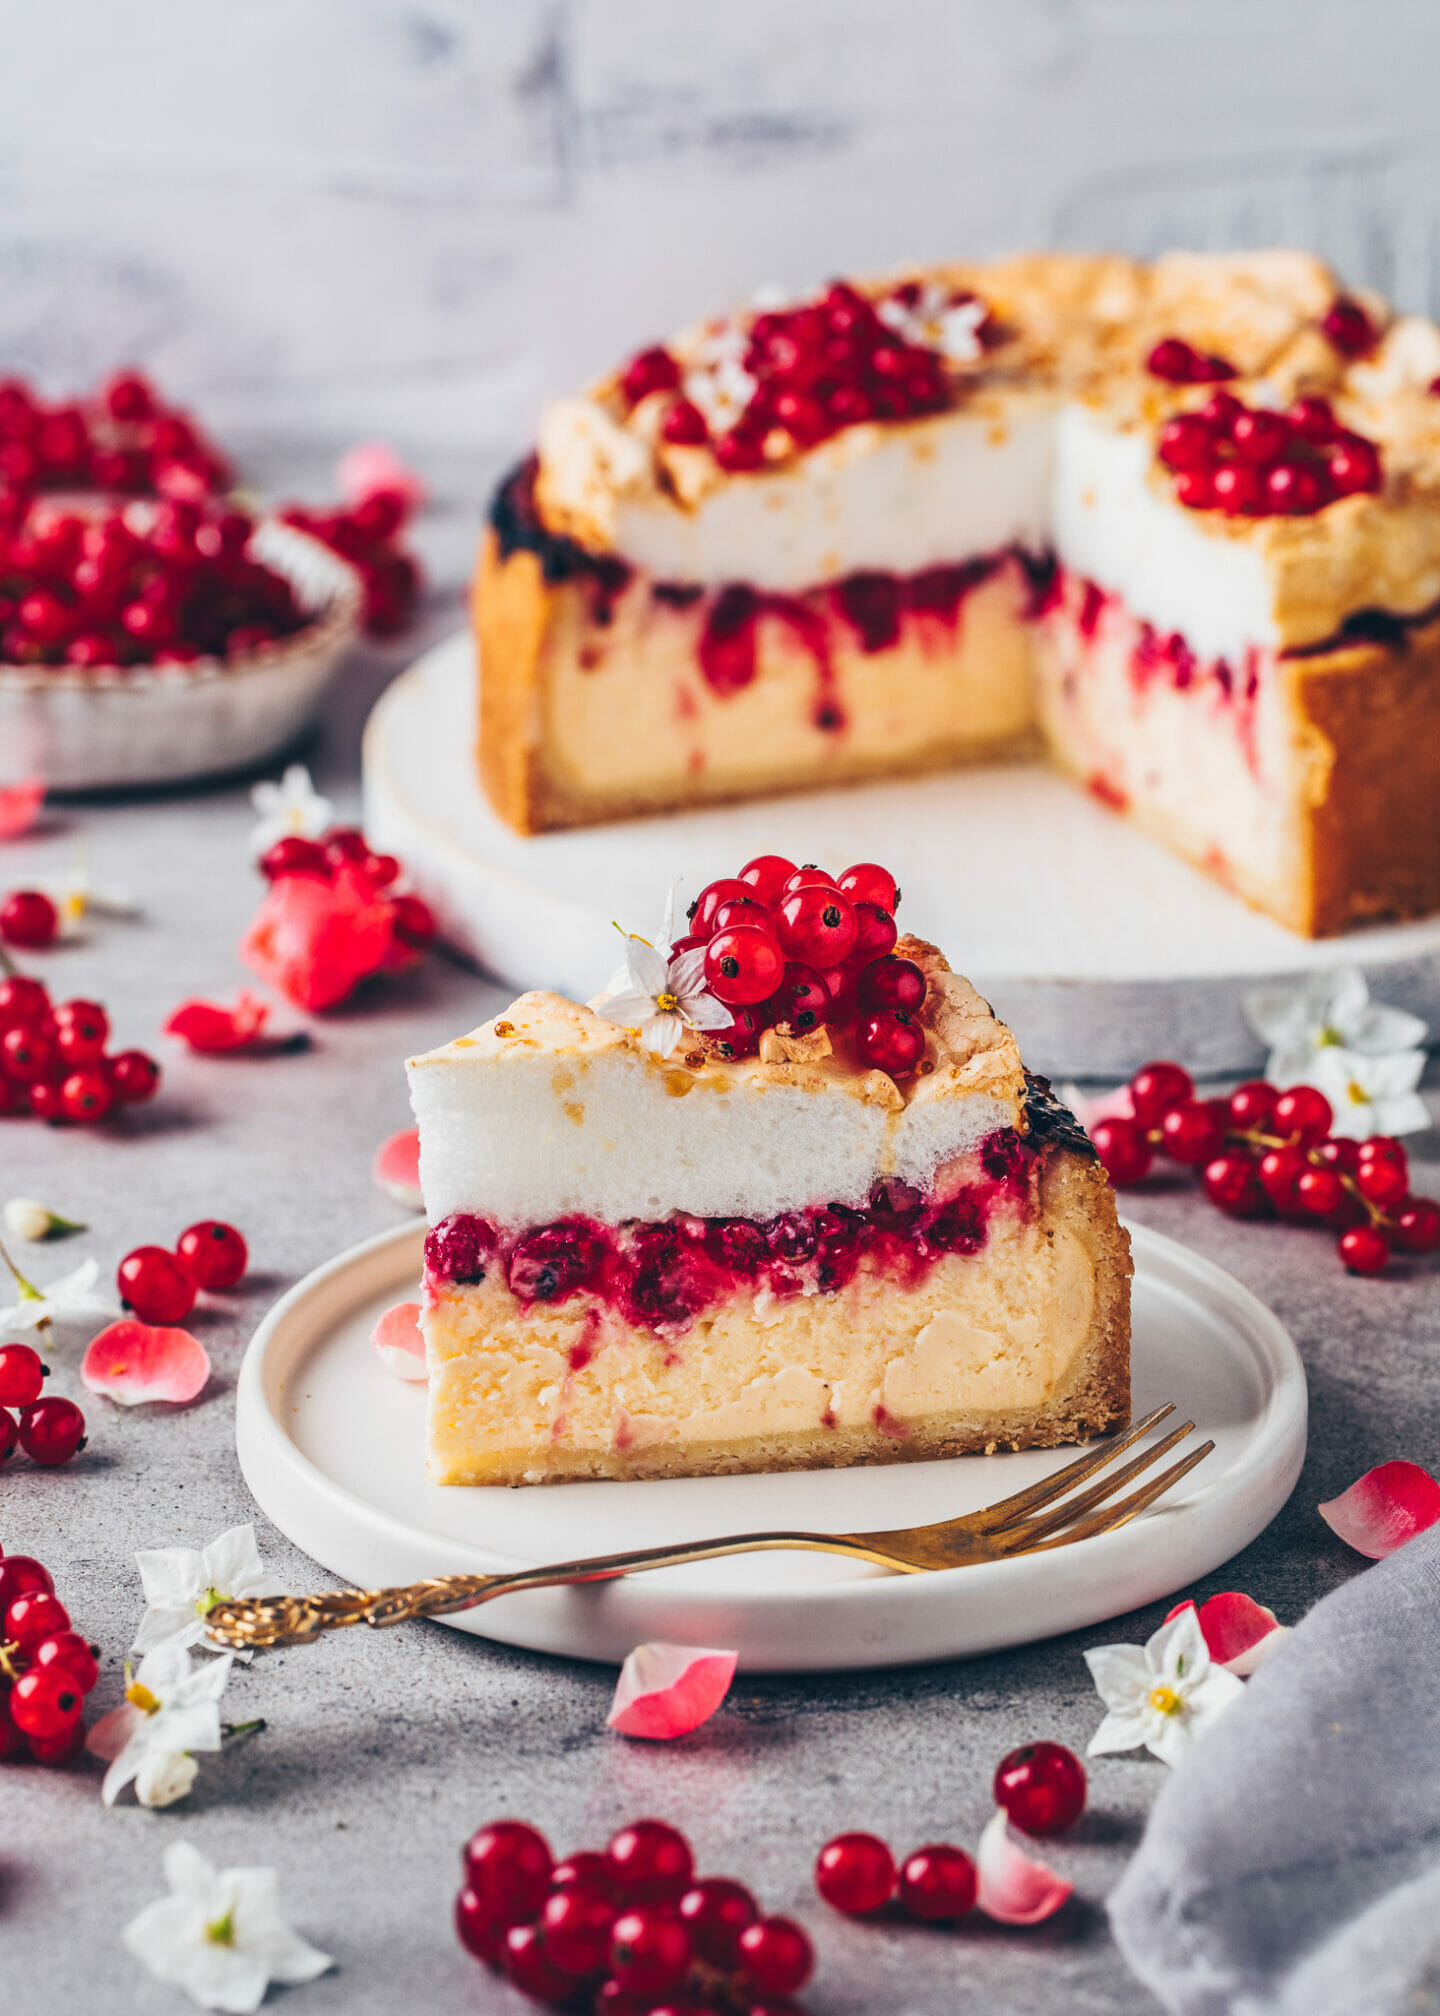 Vegan Meringue Cheesecake with Red Currants